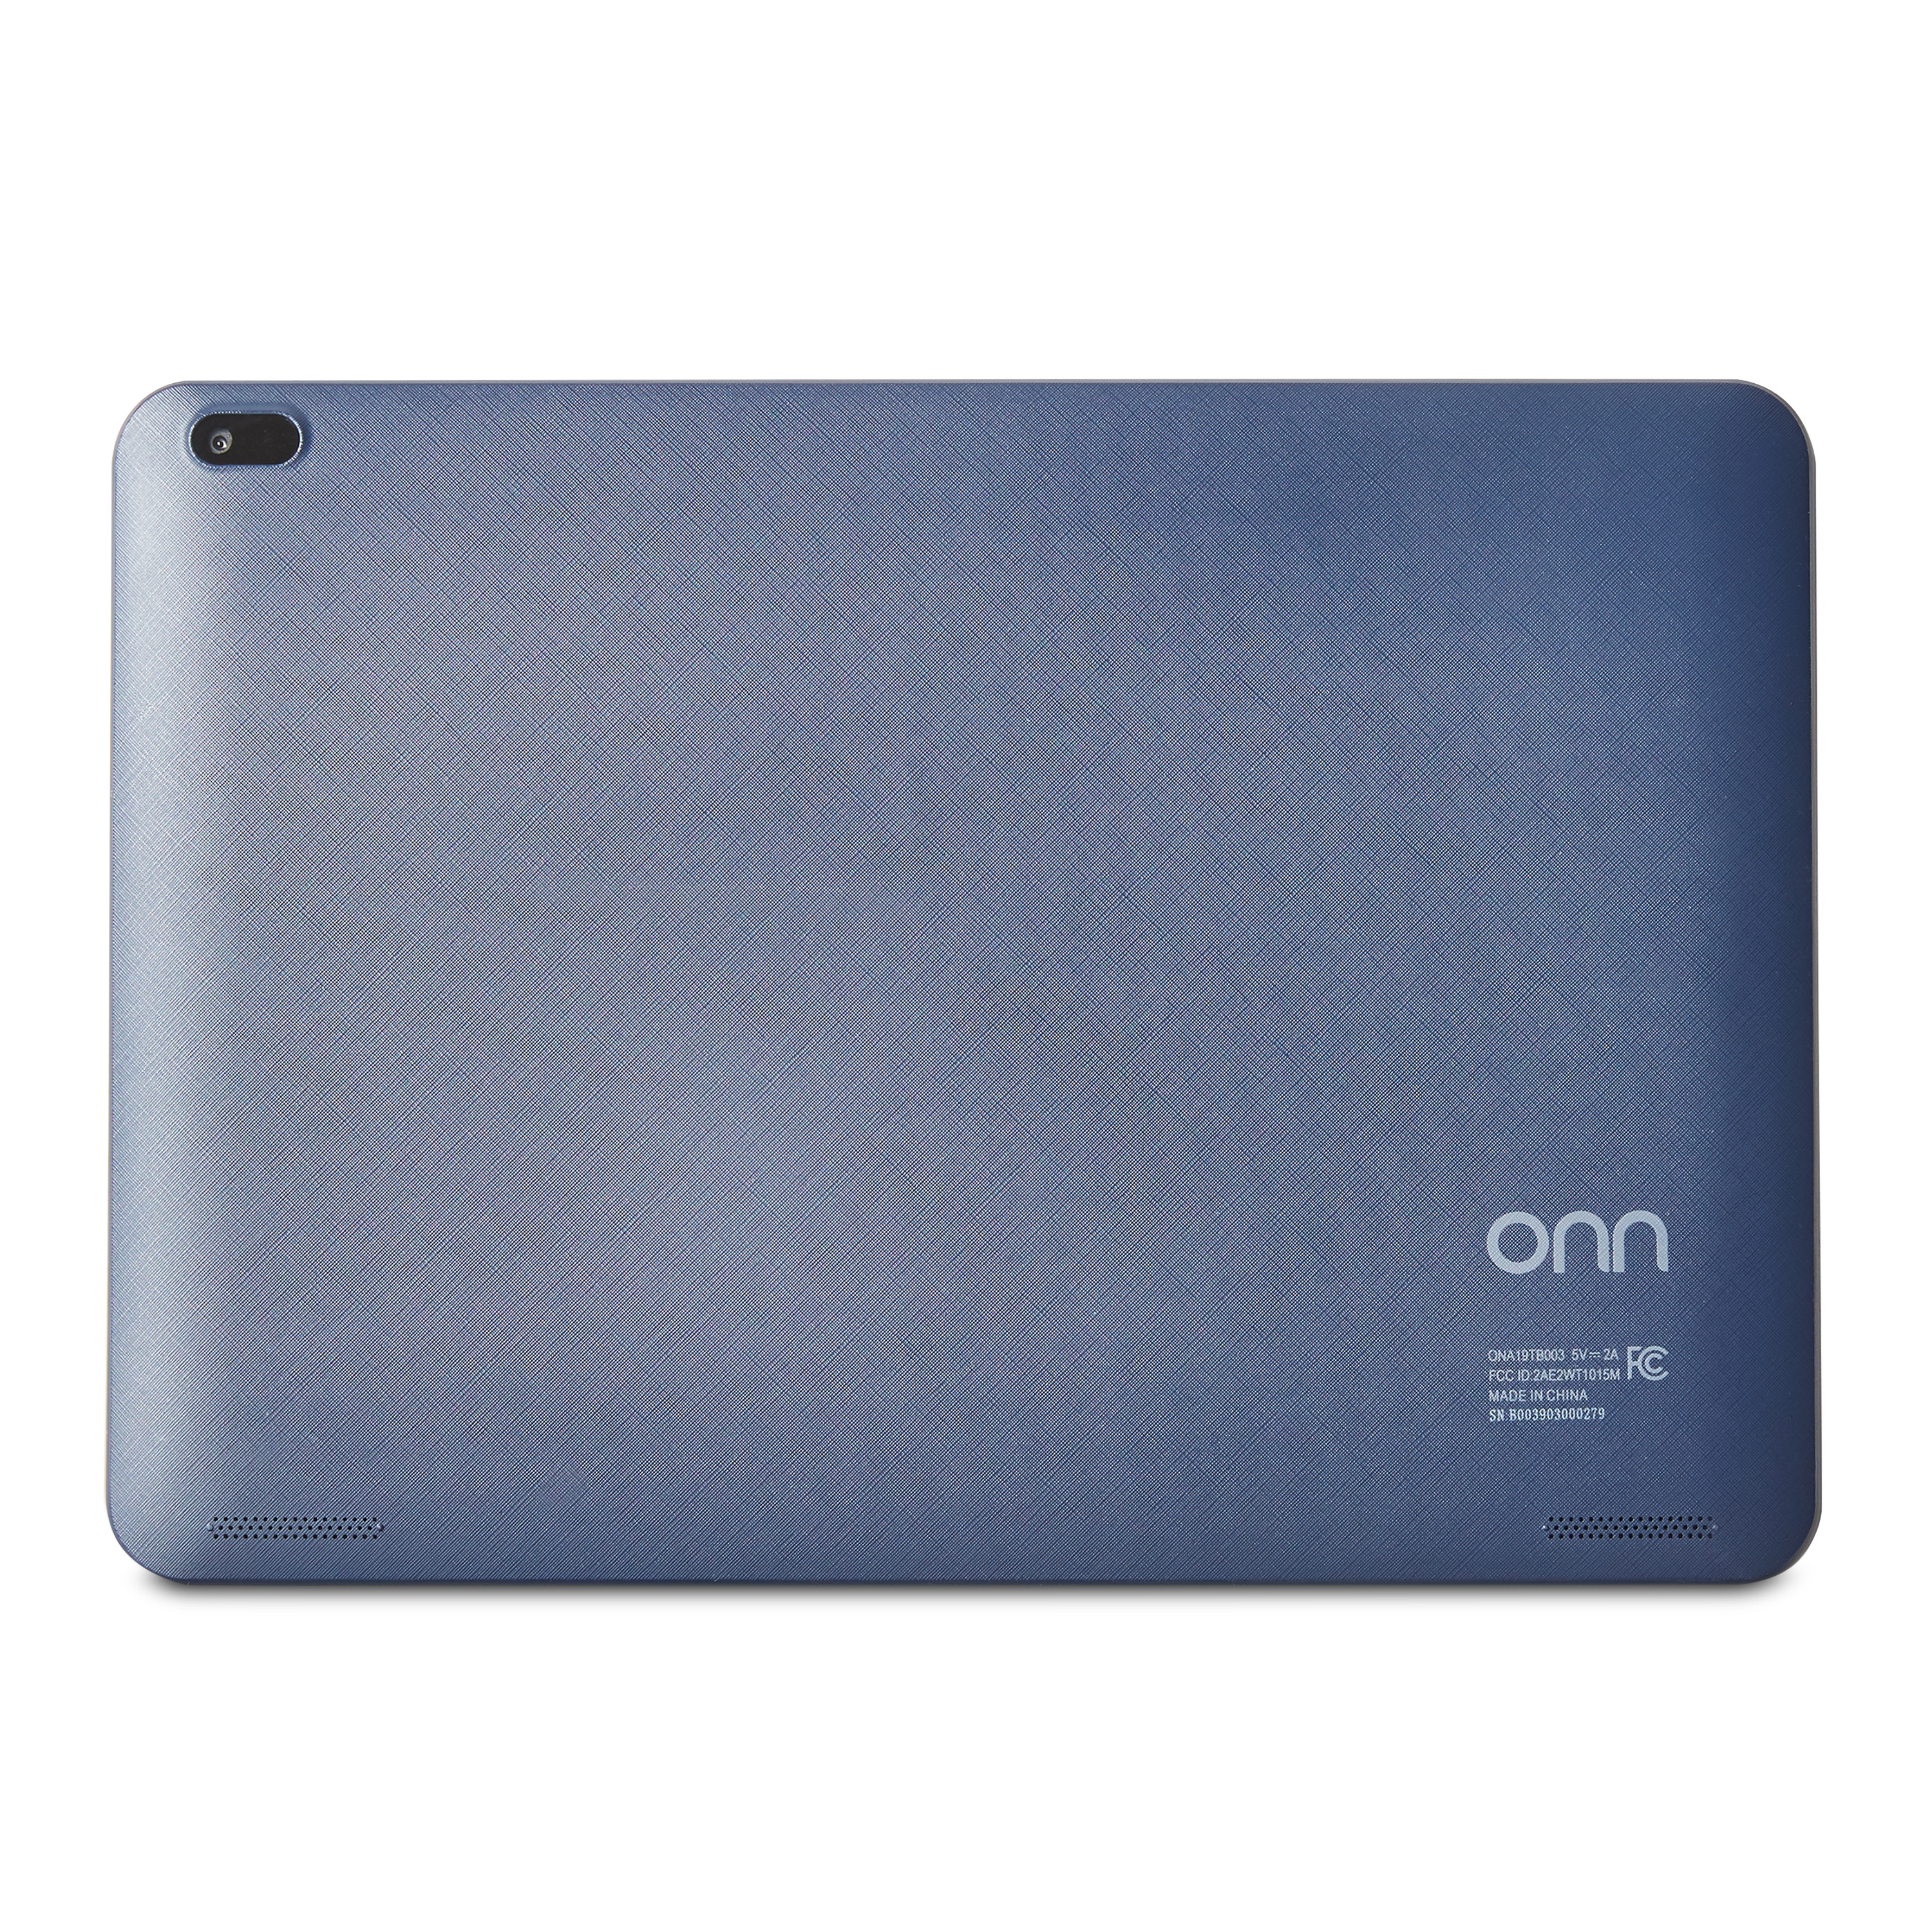 Walmart's Onn Android tablets now available from $64